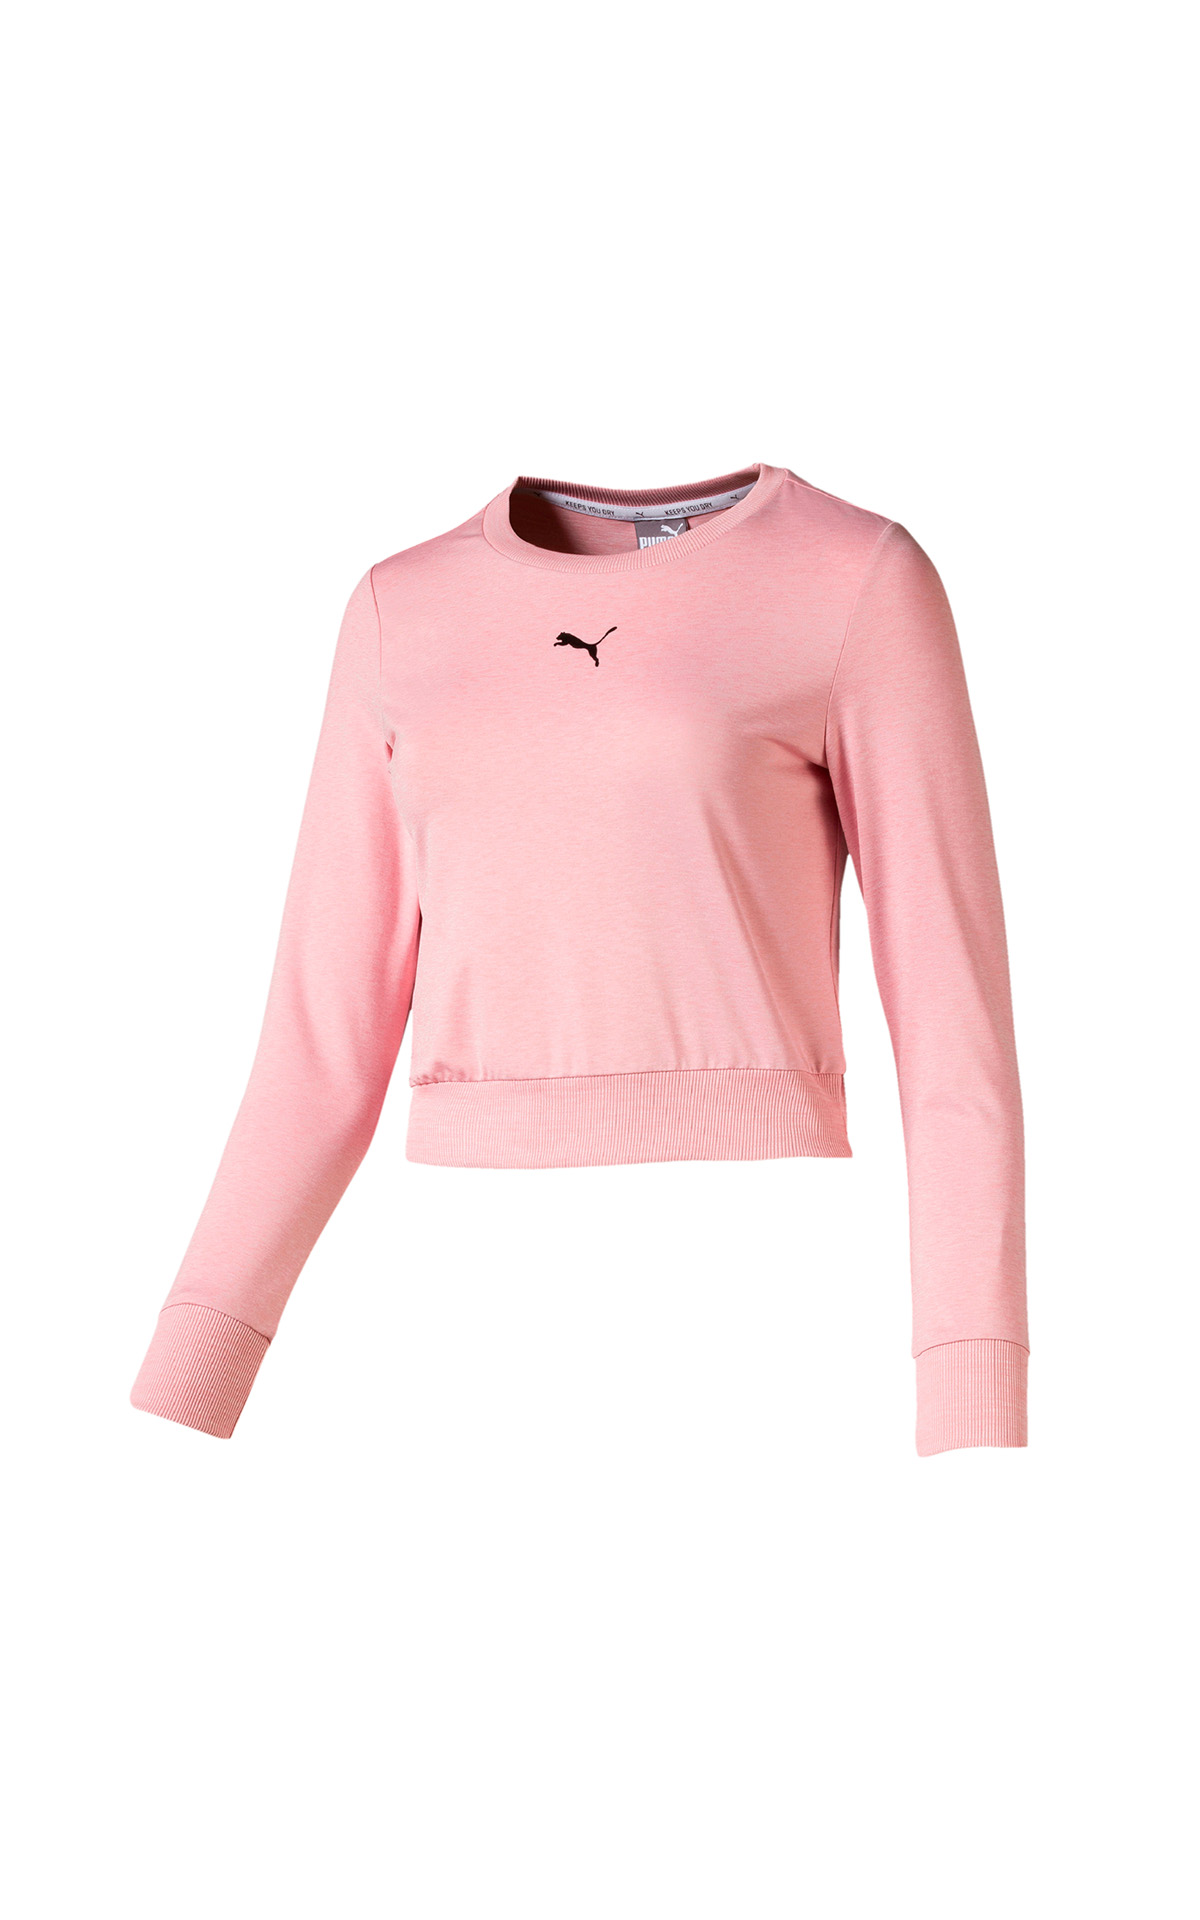 PUMA soft sports long sleeve tee in pink at The Bicester Village Shopping Collection